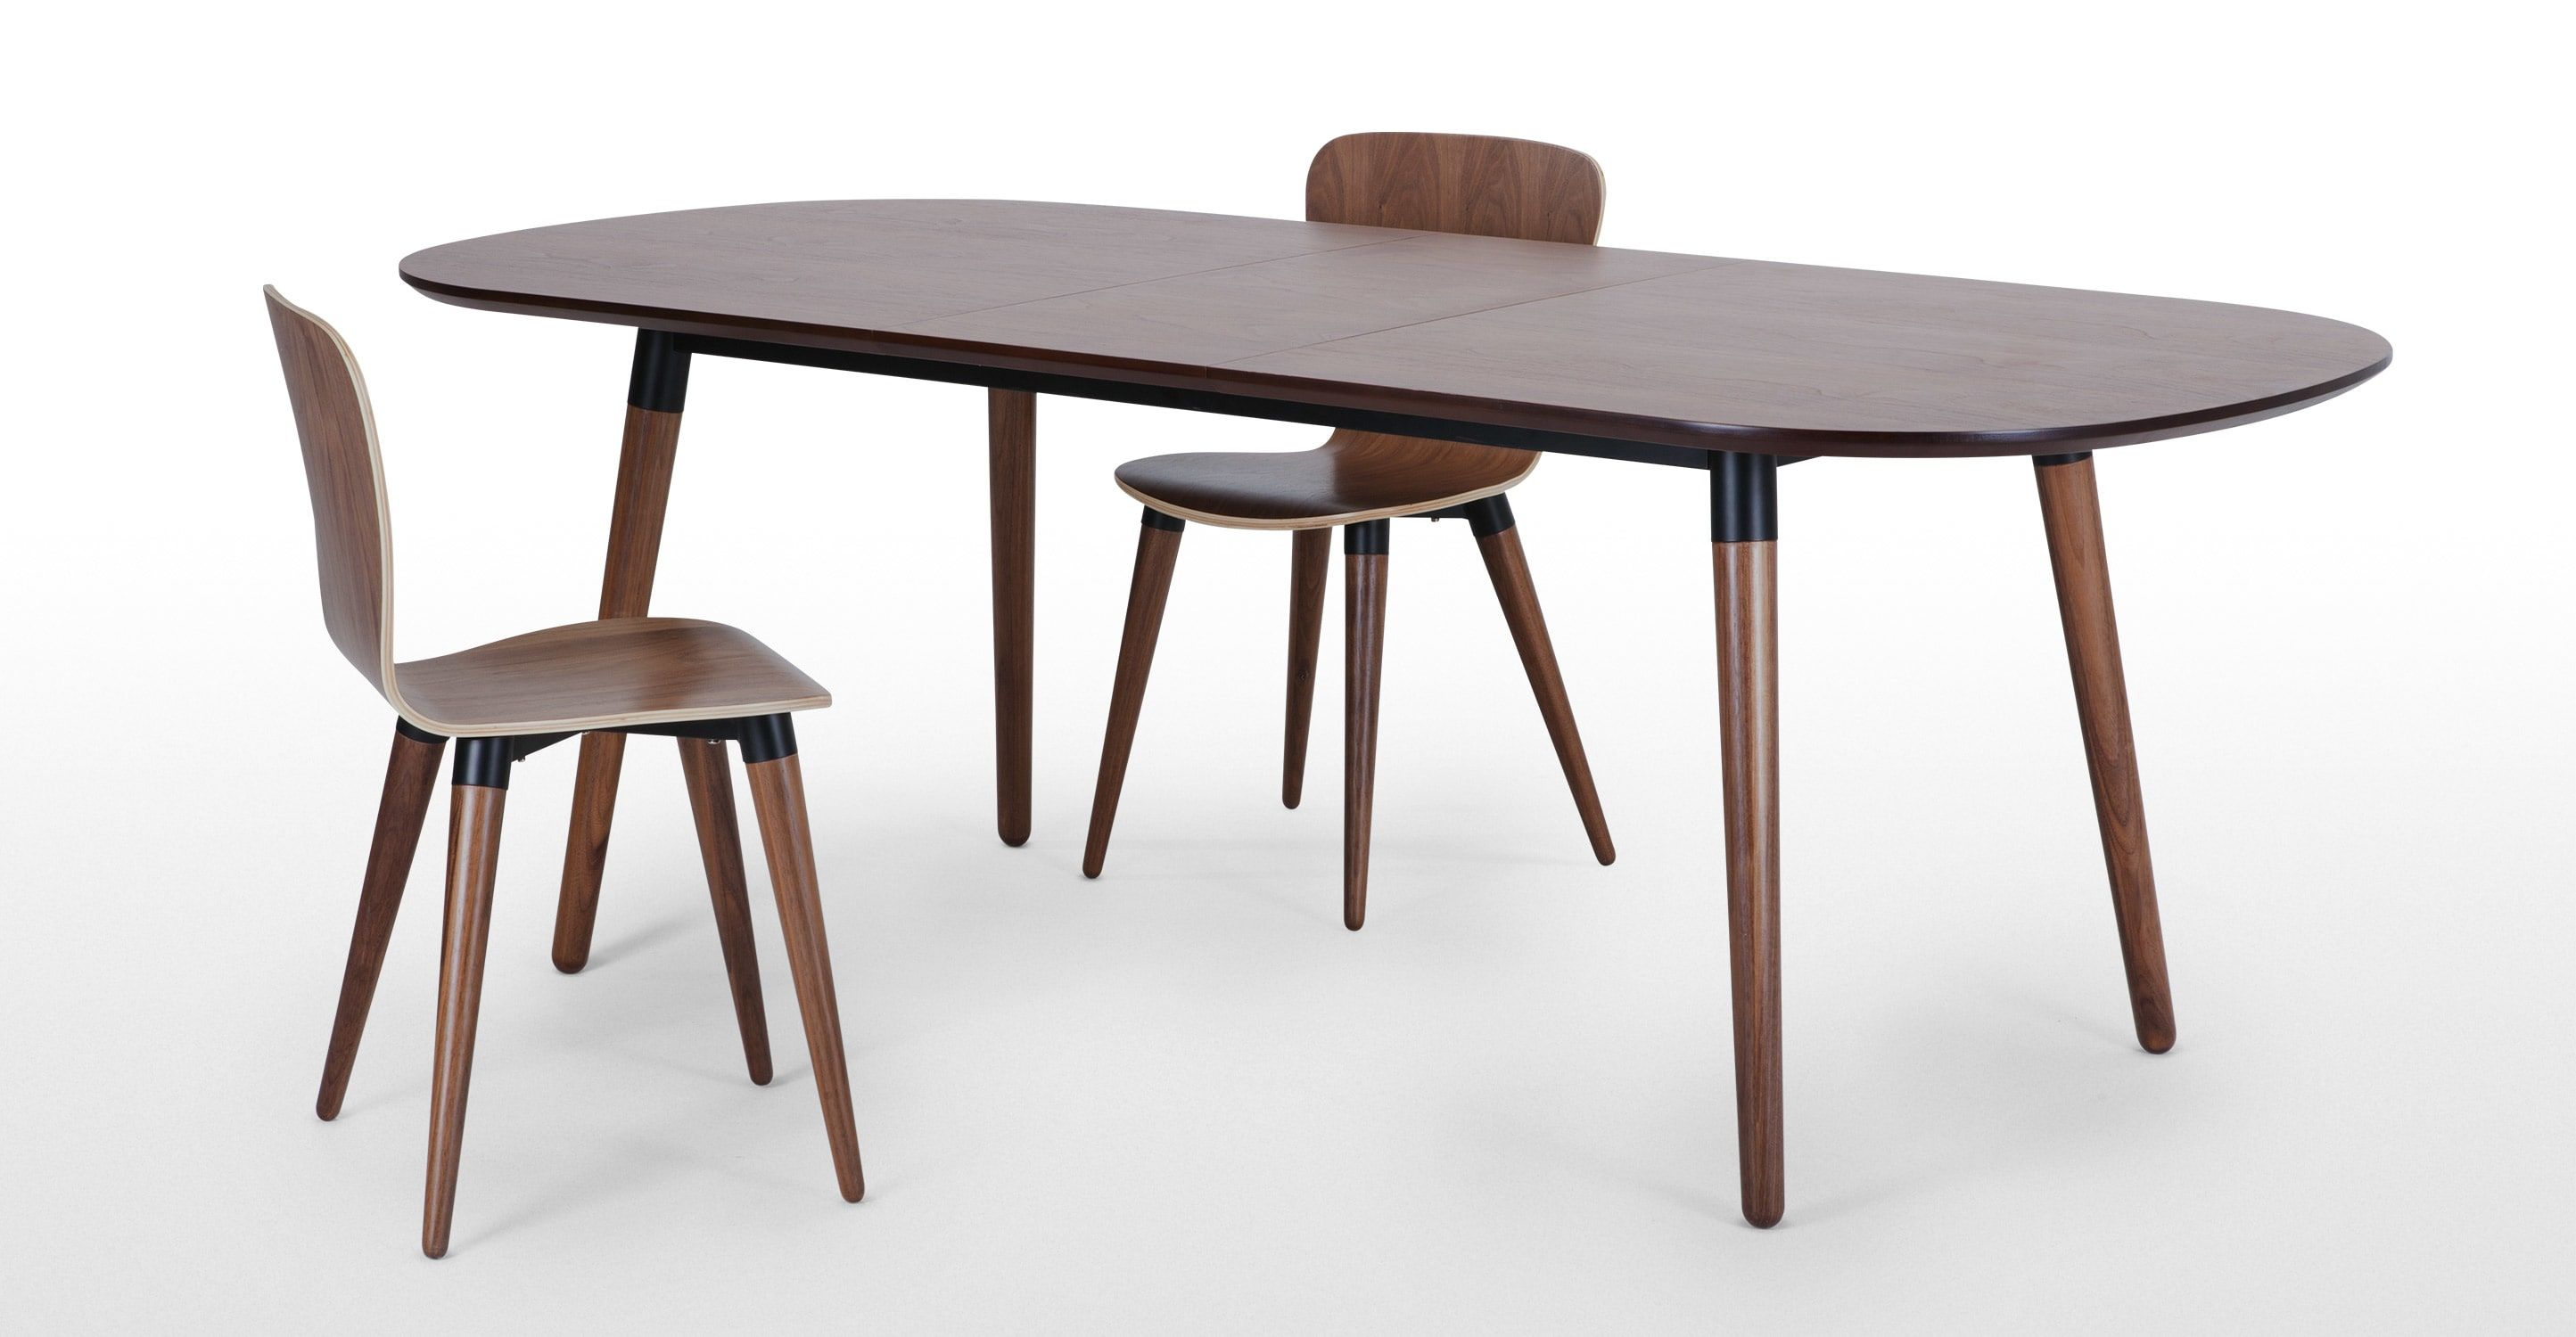 Edelweiss 68 Seat Oval Extending Dining Table, Walnut and